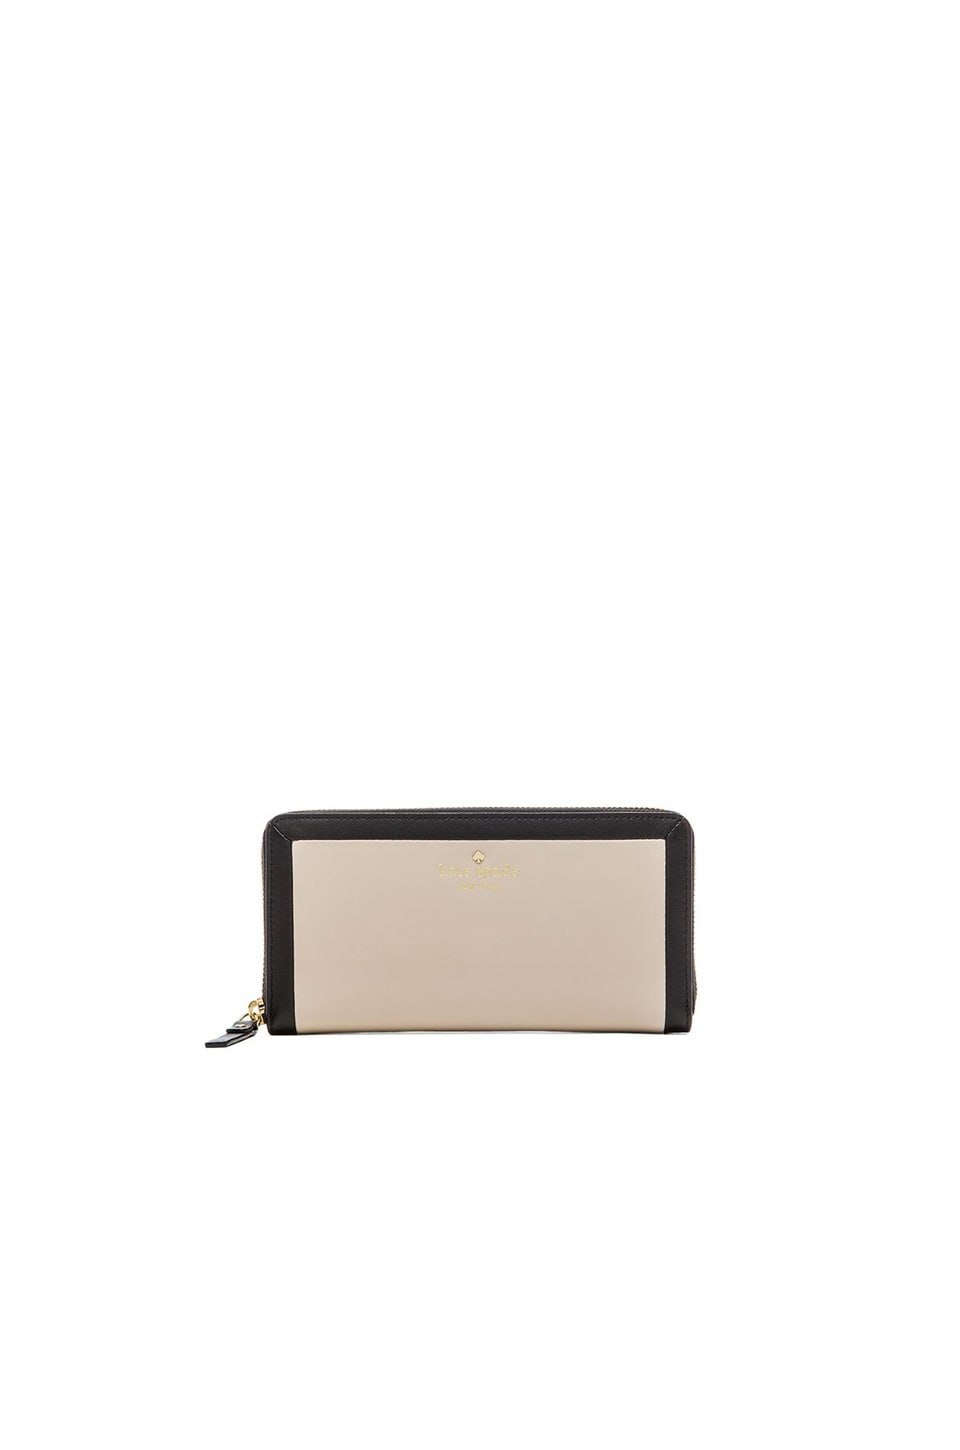 kate spade new york Lacey Wallet in Black & Pebble